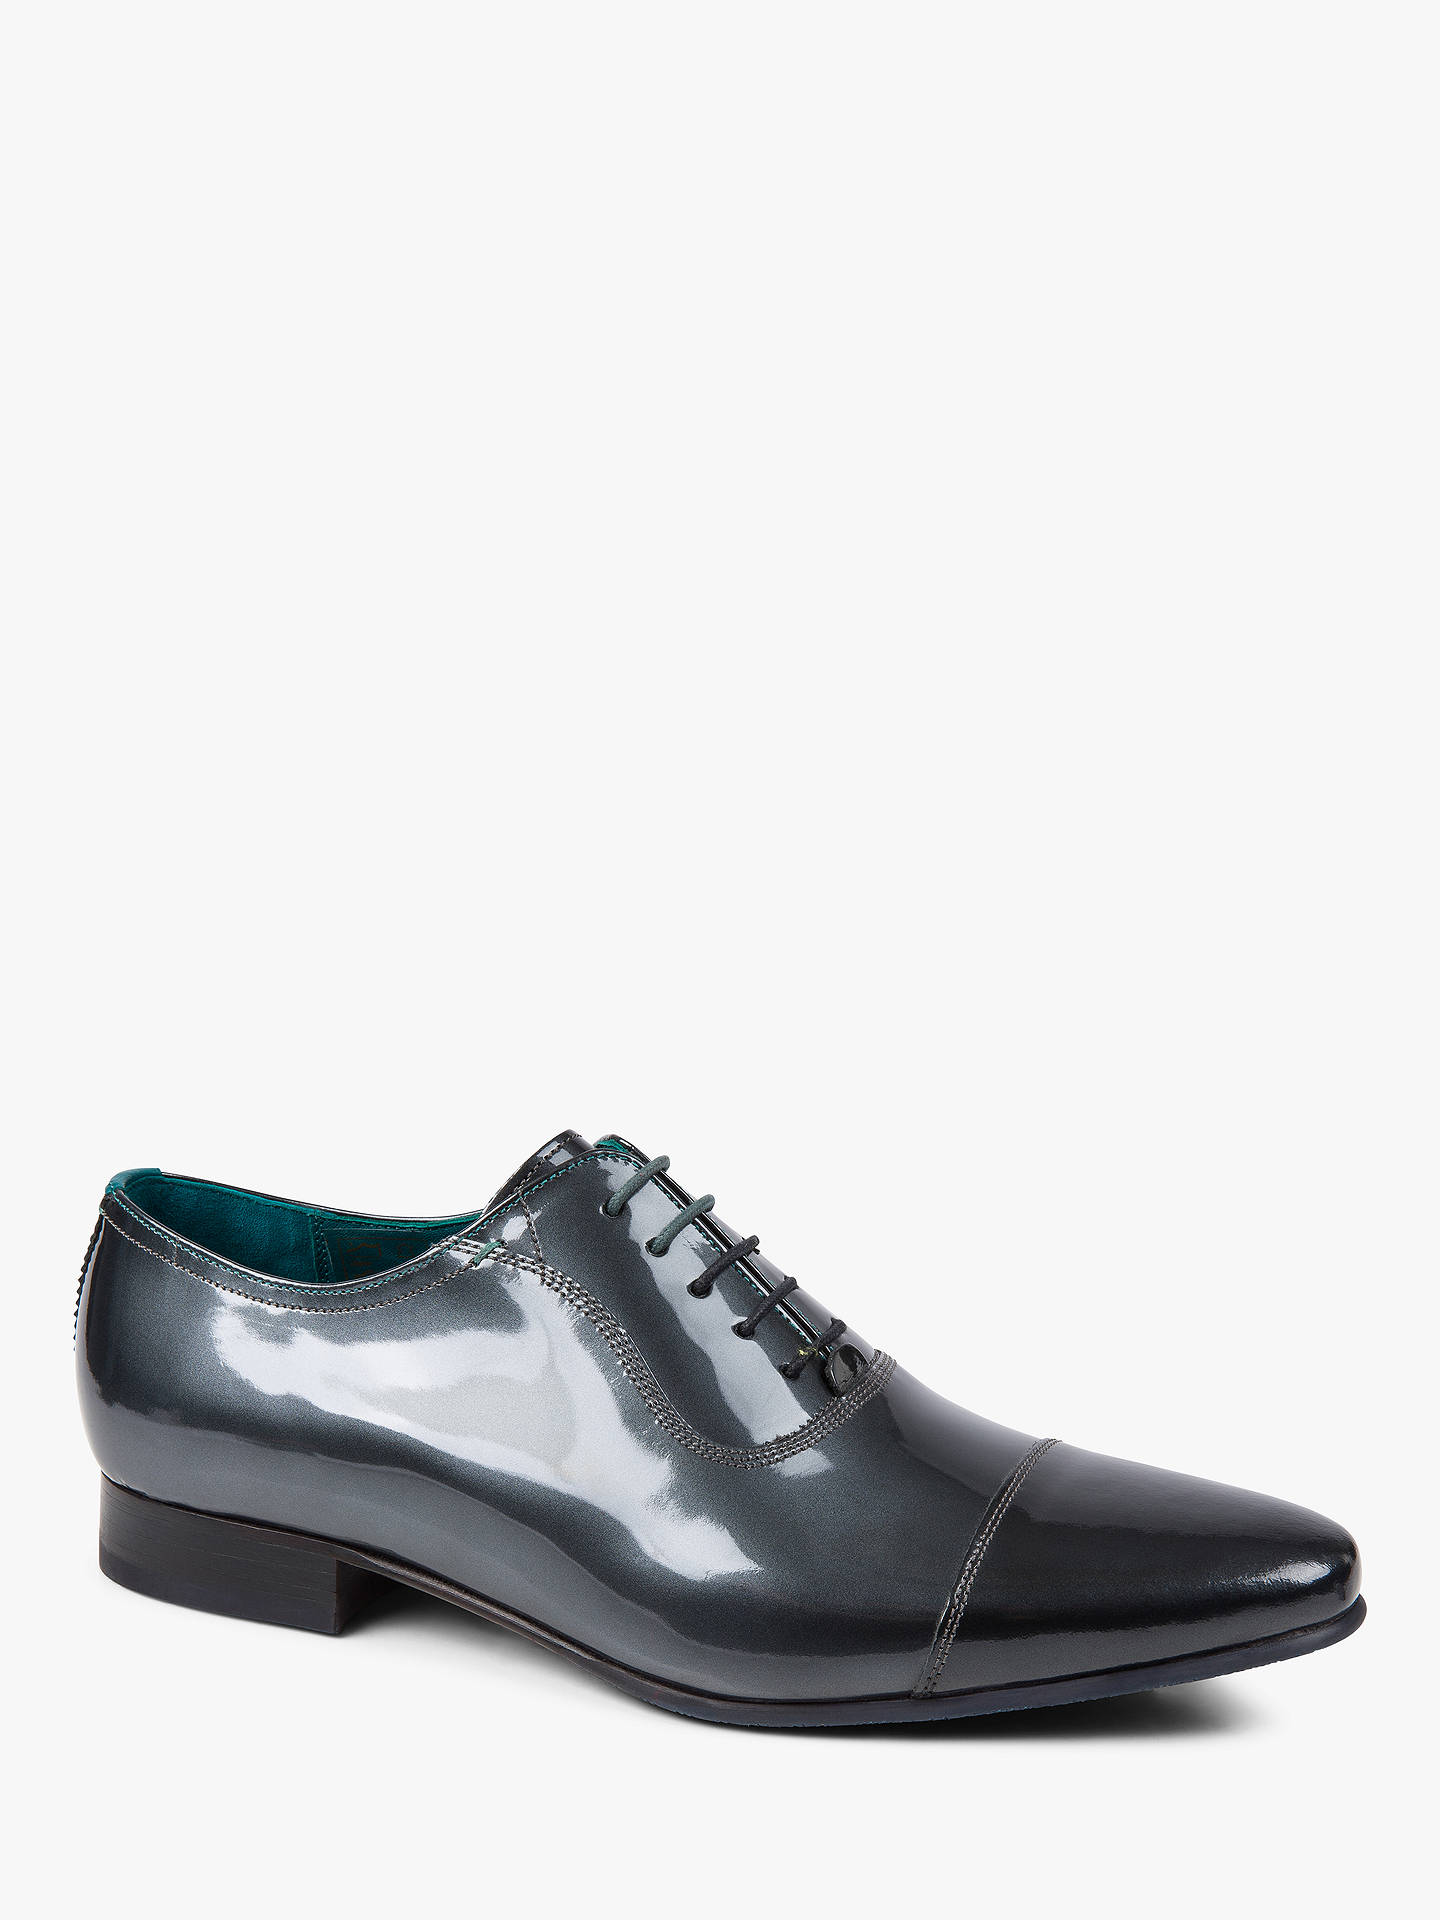 098359bd5 Buy Ted Baker Sharney Patent Oxford Shoes